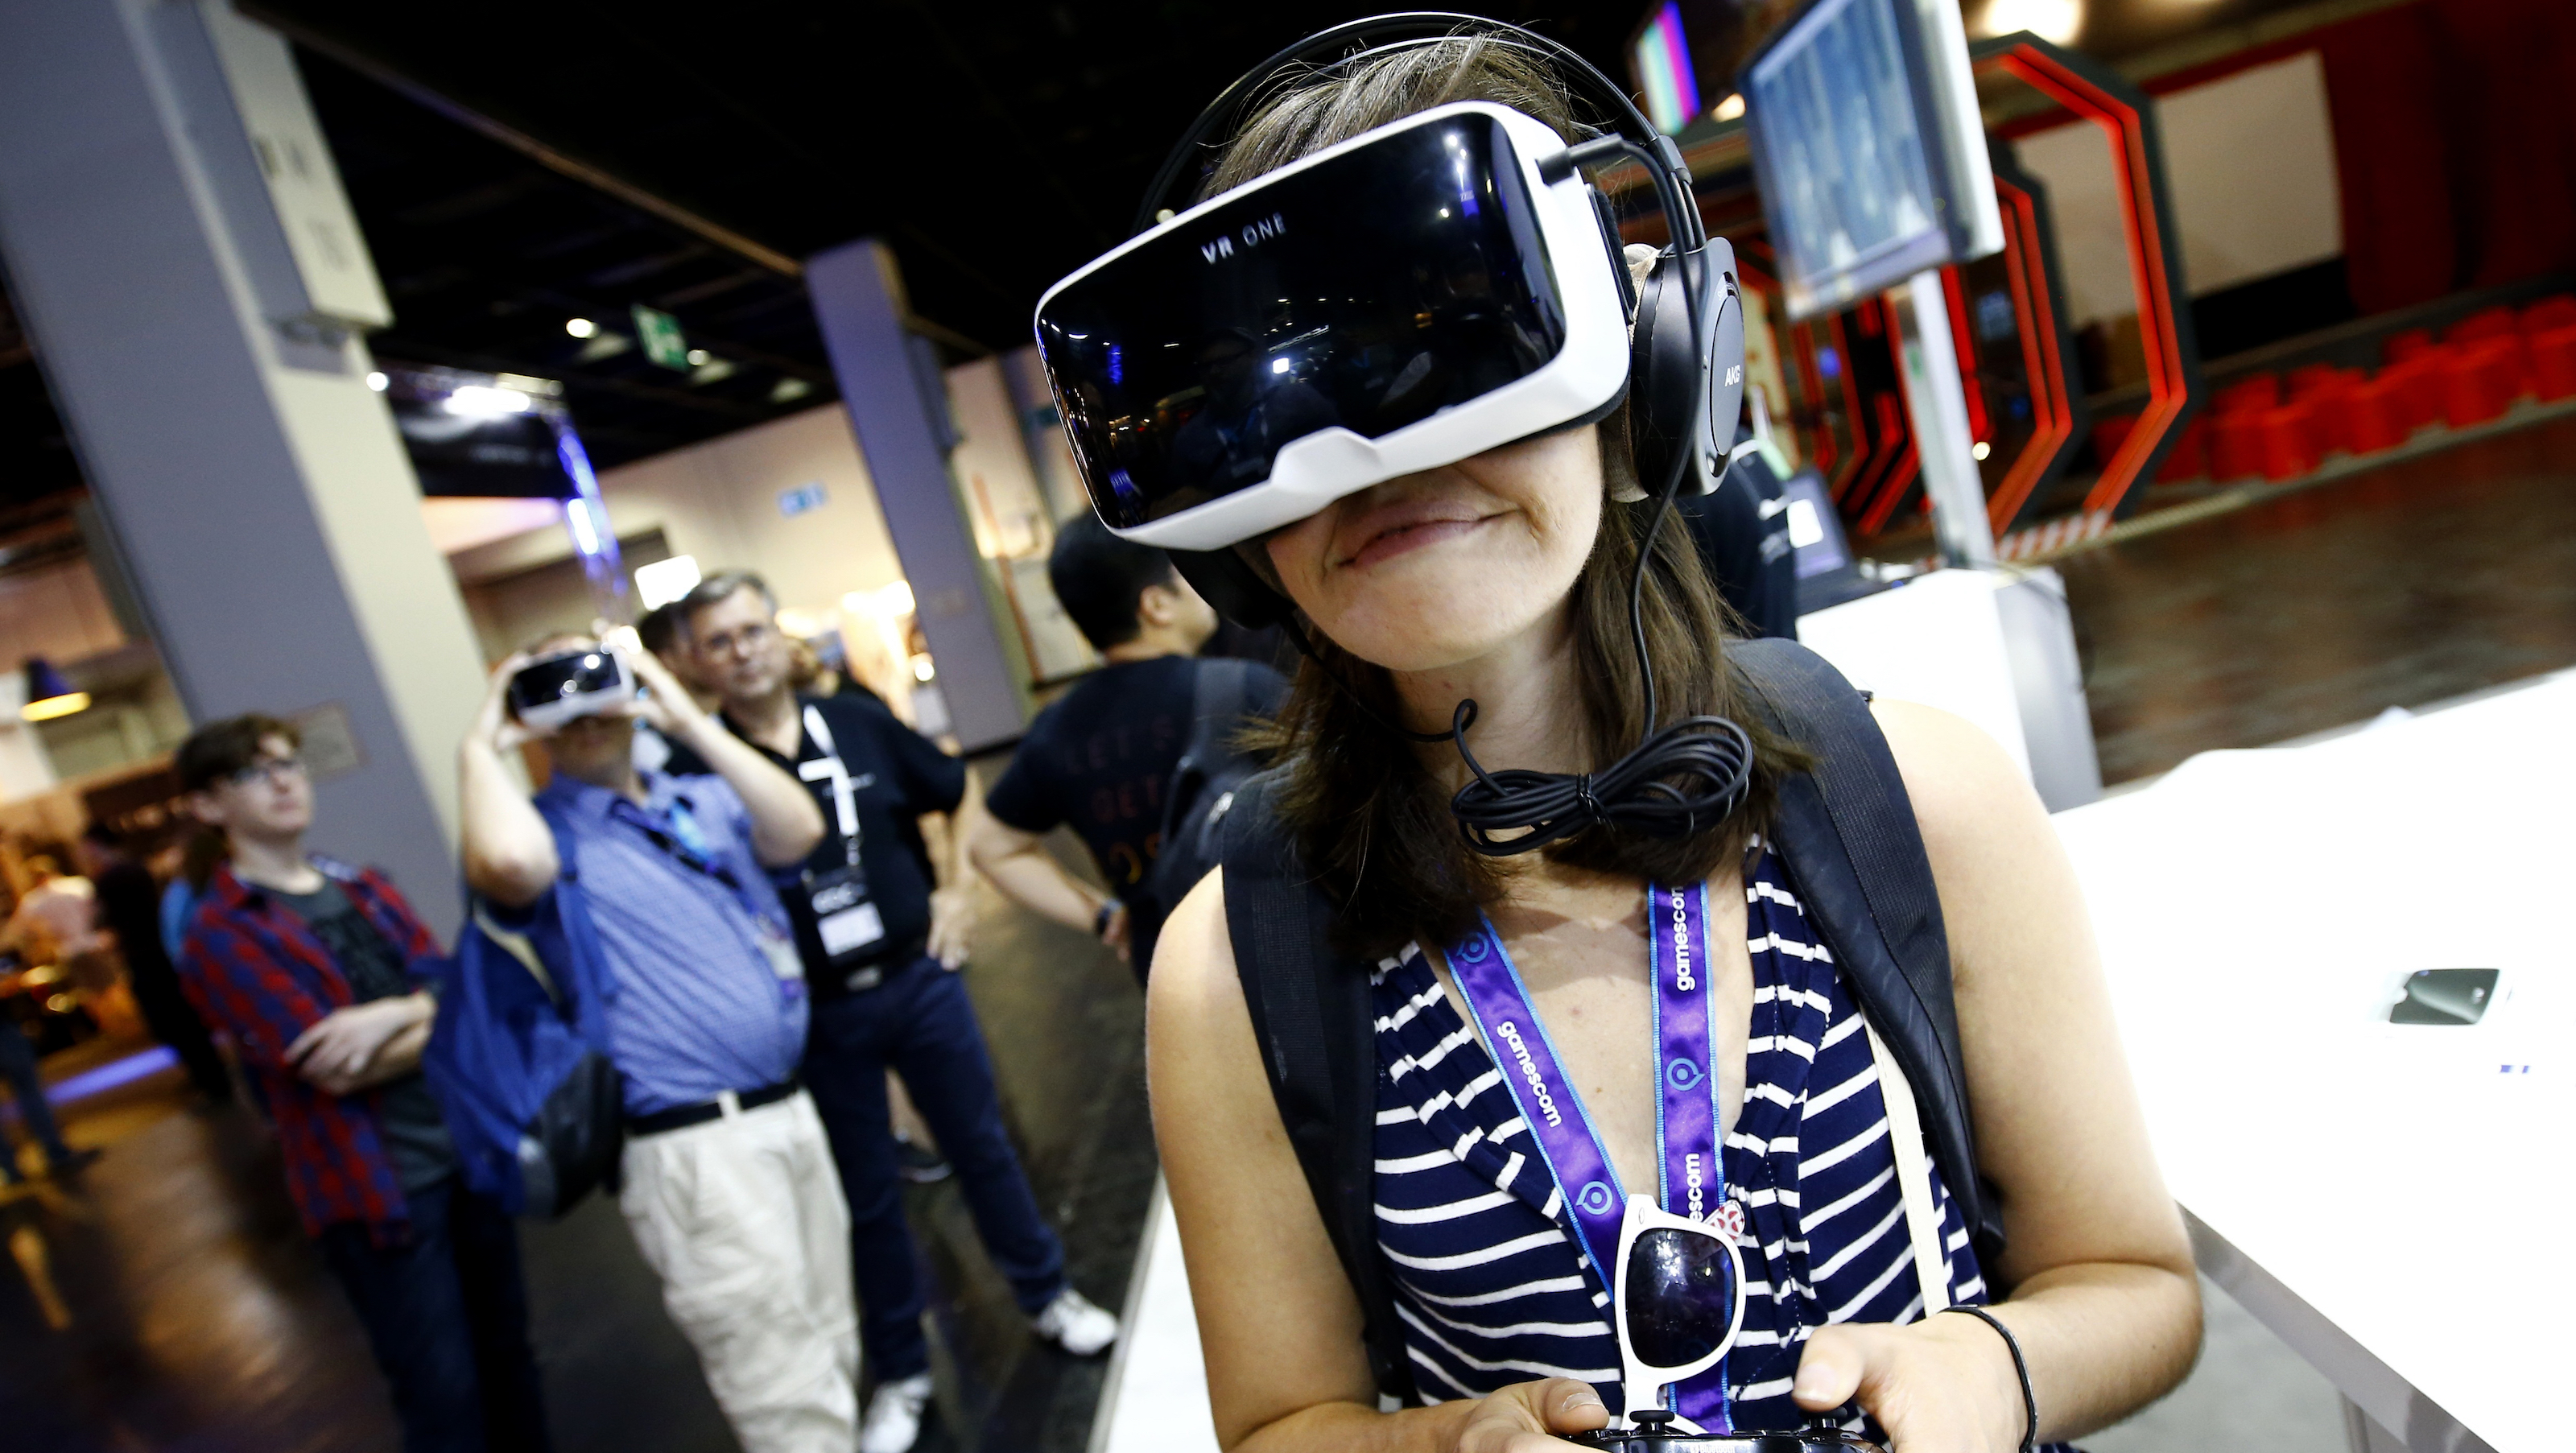 "A woman tests a virtual reality headset ""VR One"" developed by a German manufacturer Zeiss at the Gamescom 2015 fair in Cologne, Germany August 5, 2015. The Gamescom convention, Europe's largest video games trade fair, runs from August 5 to August 9. REUTERS/Kai Pfaffenbach  - RTX1N431"